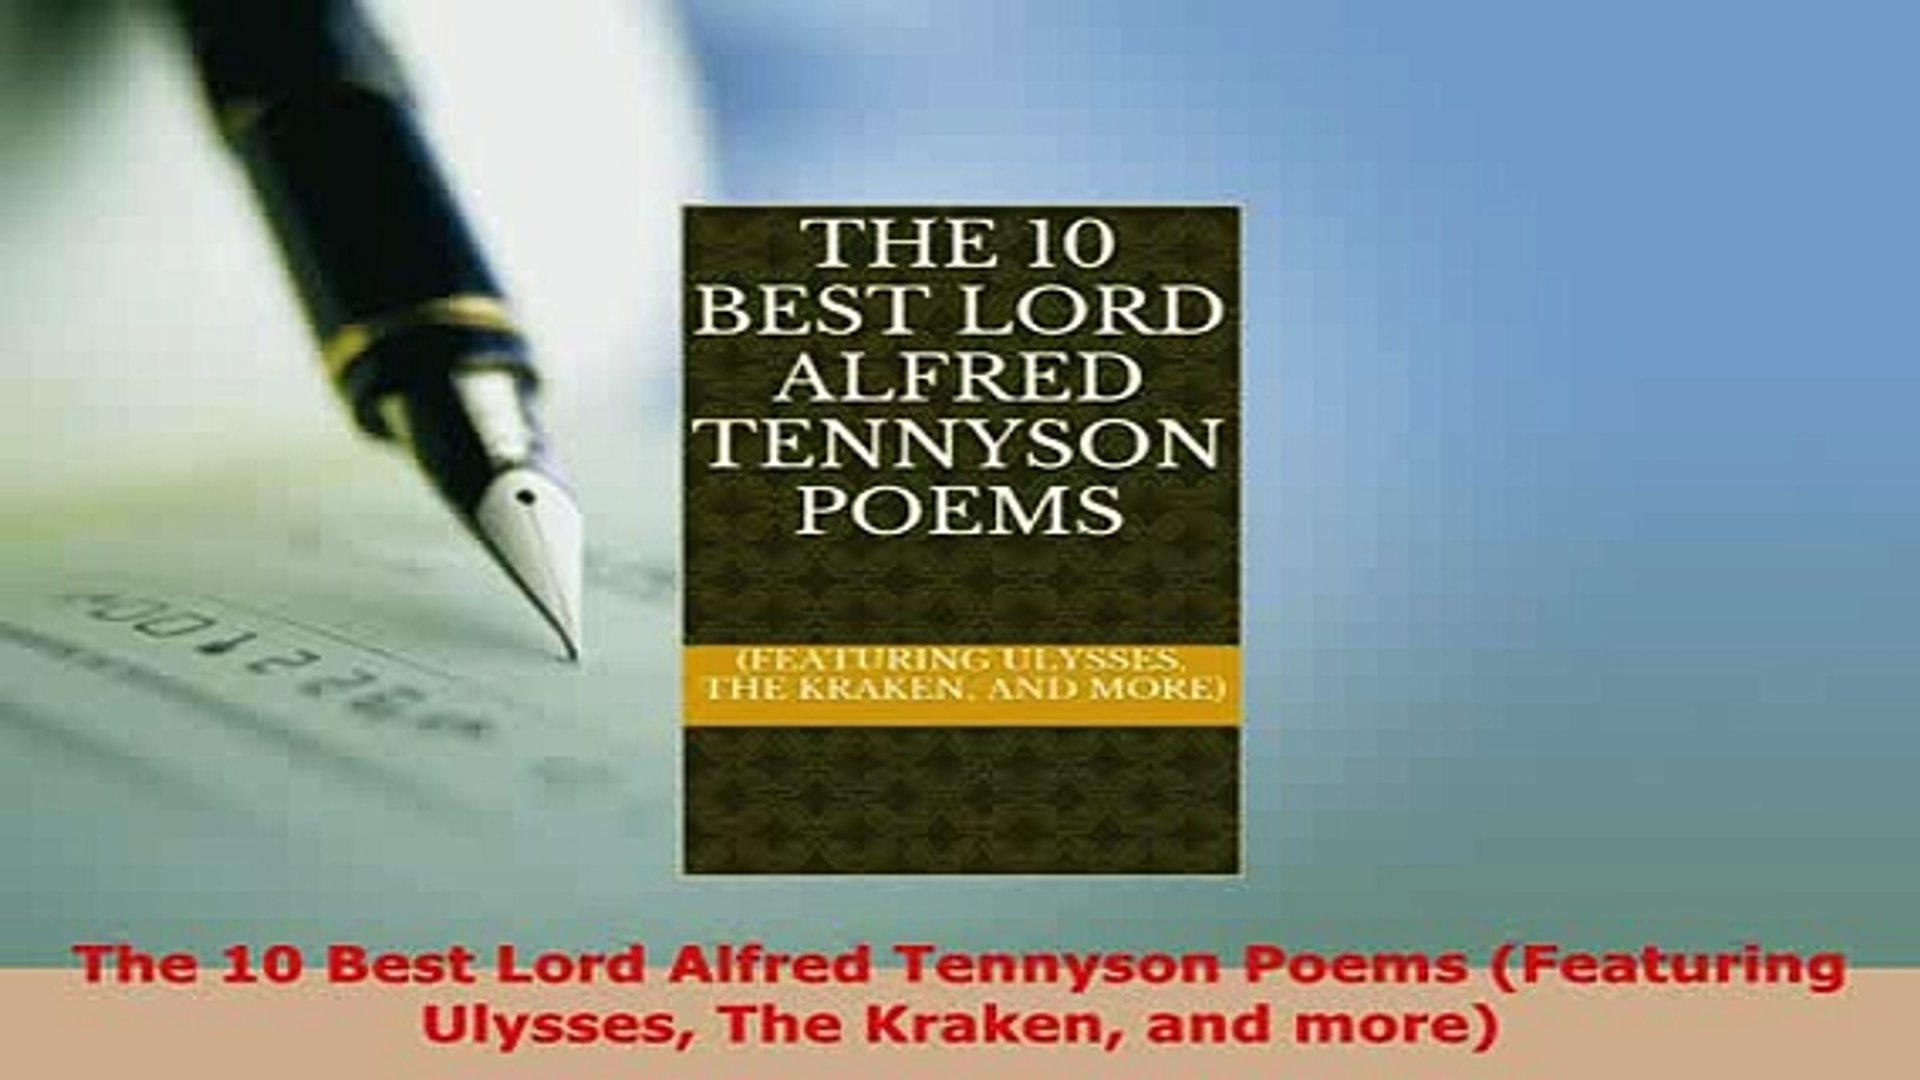 Pdf The 10 Best Lord Alfred Tennyson Poems Featuring Ulysses The Kraken And More Read Online